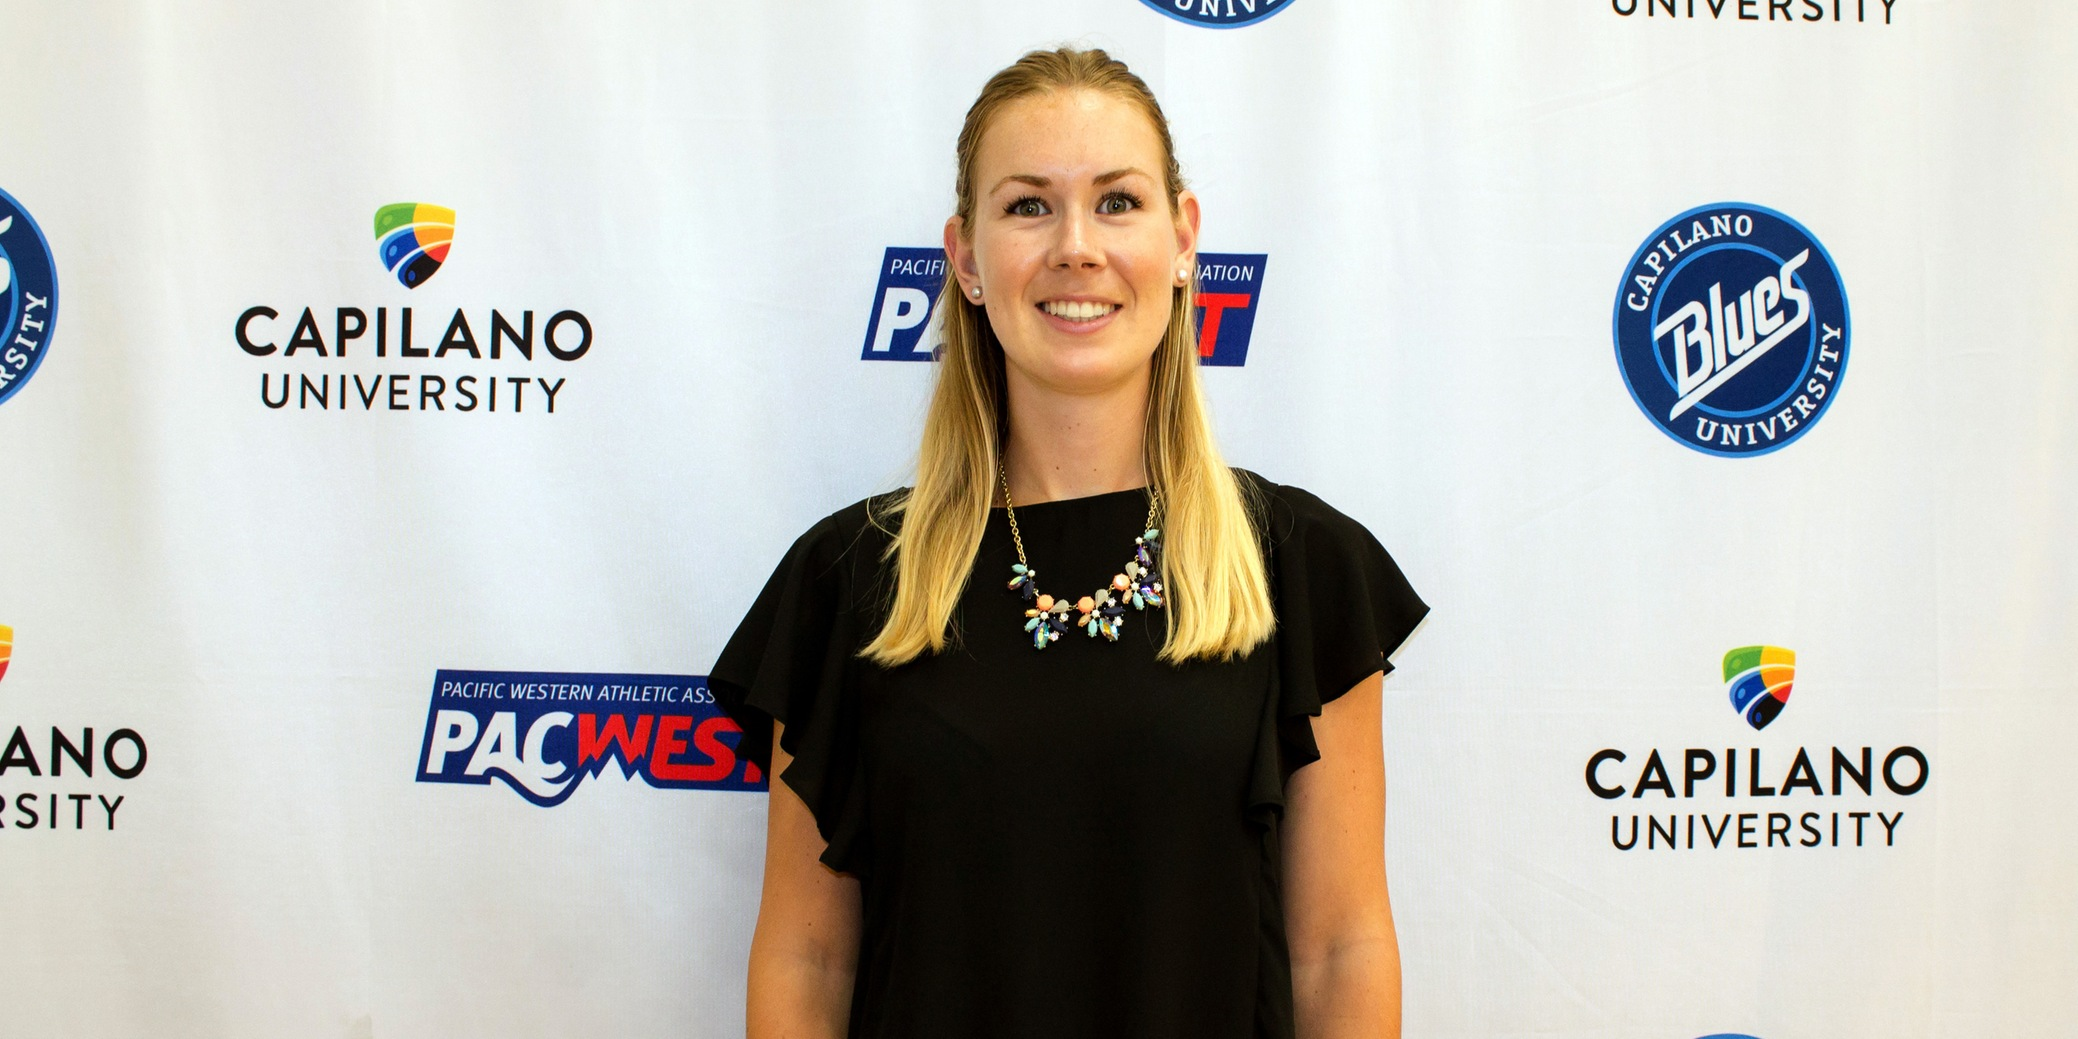 Alison Funk - Newest member of the Department of Athletics and Recreation